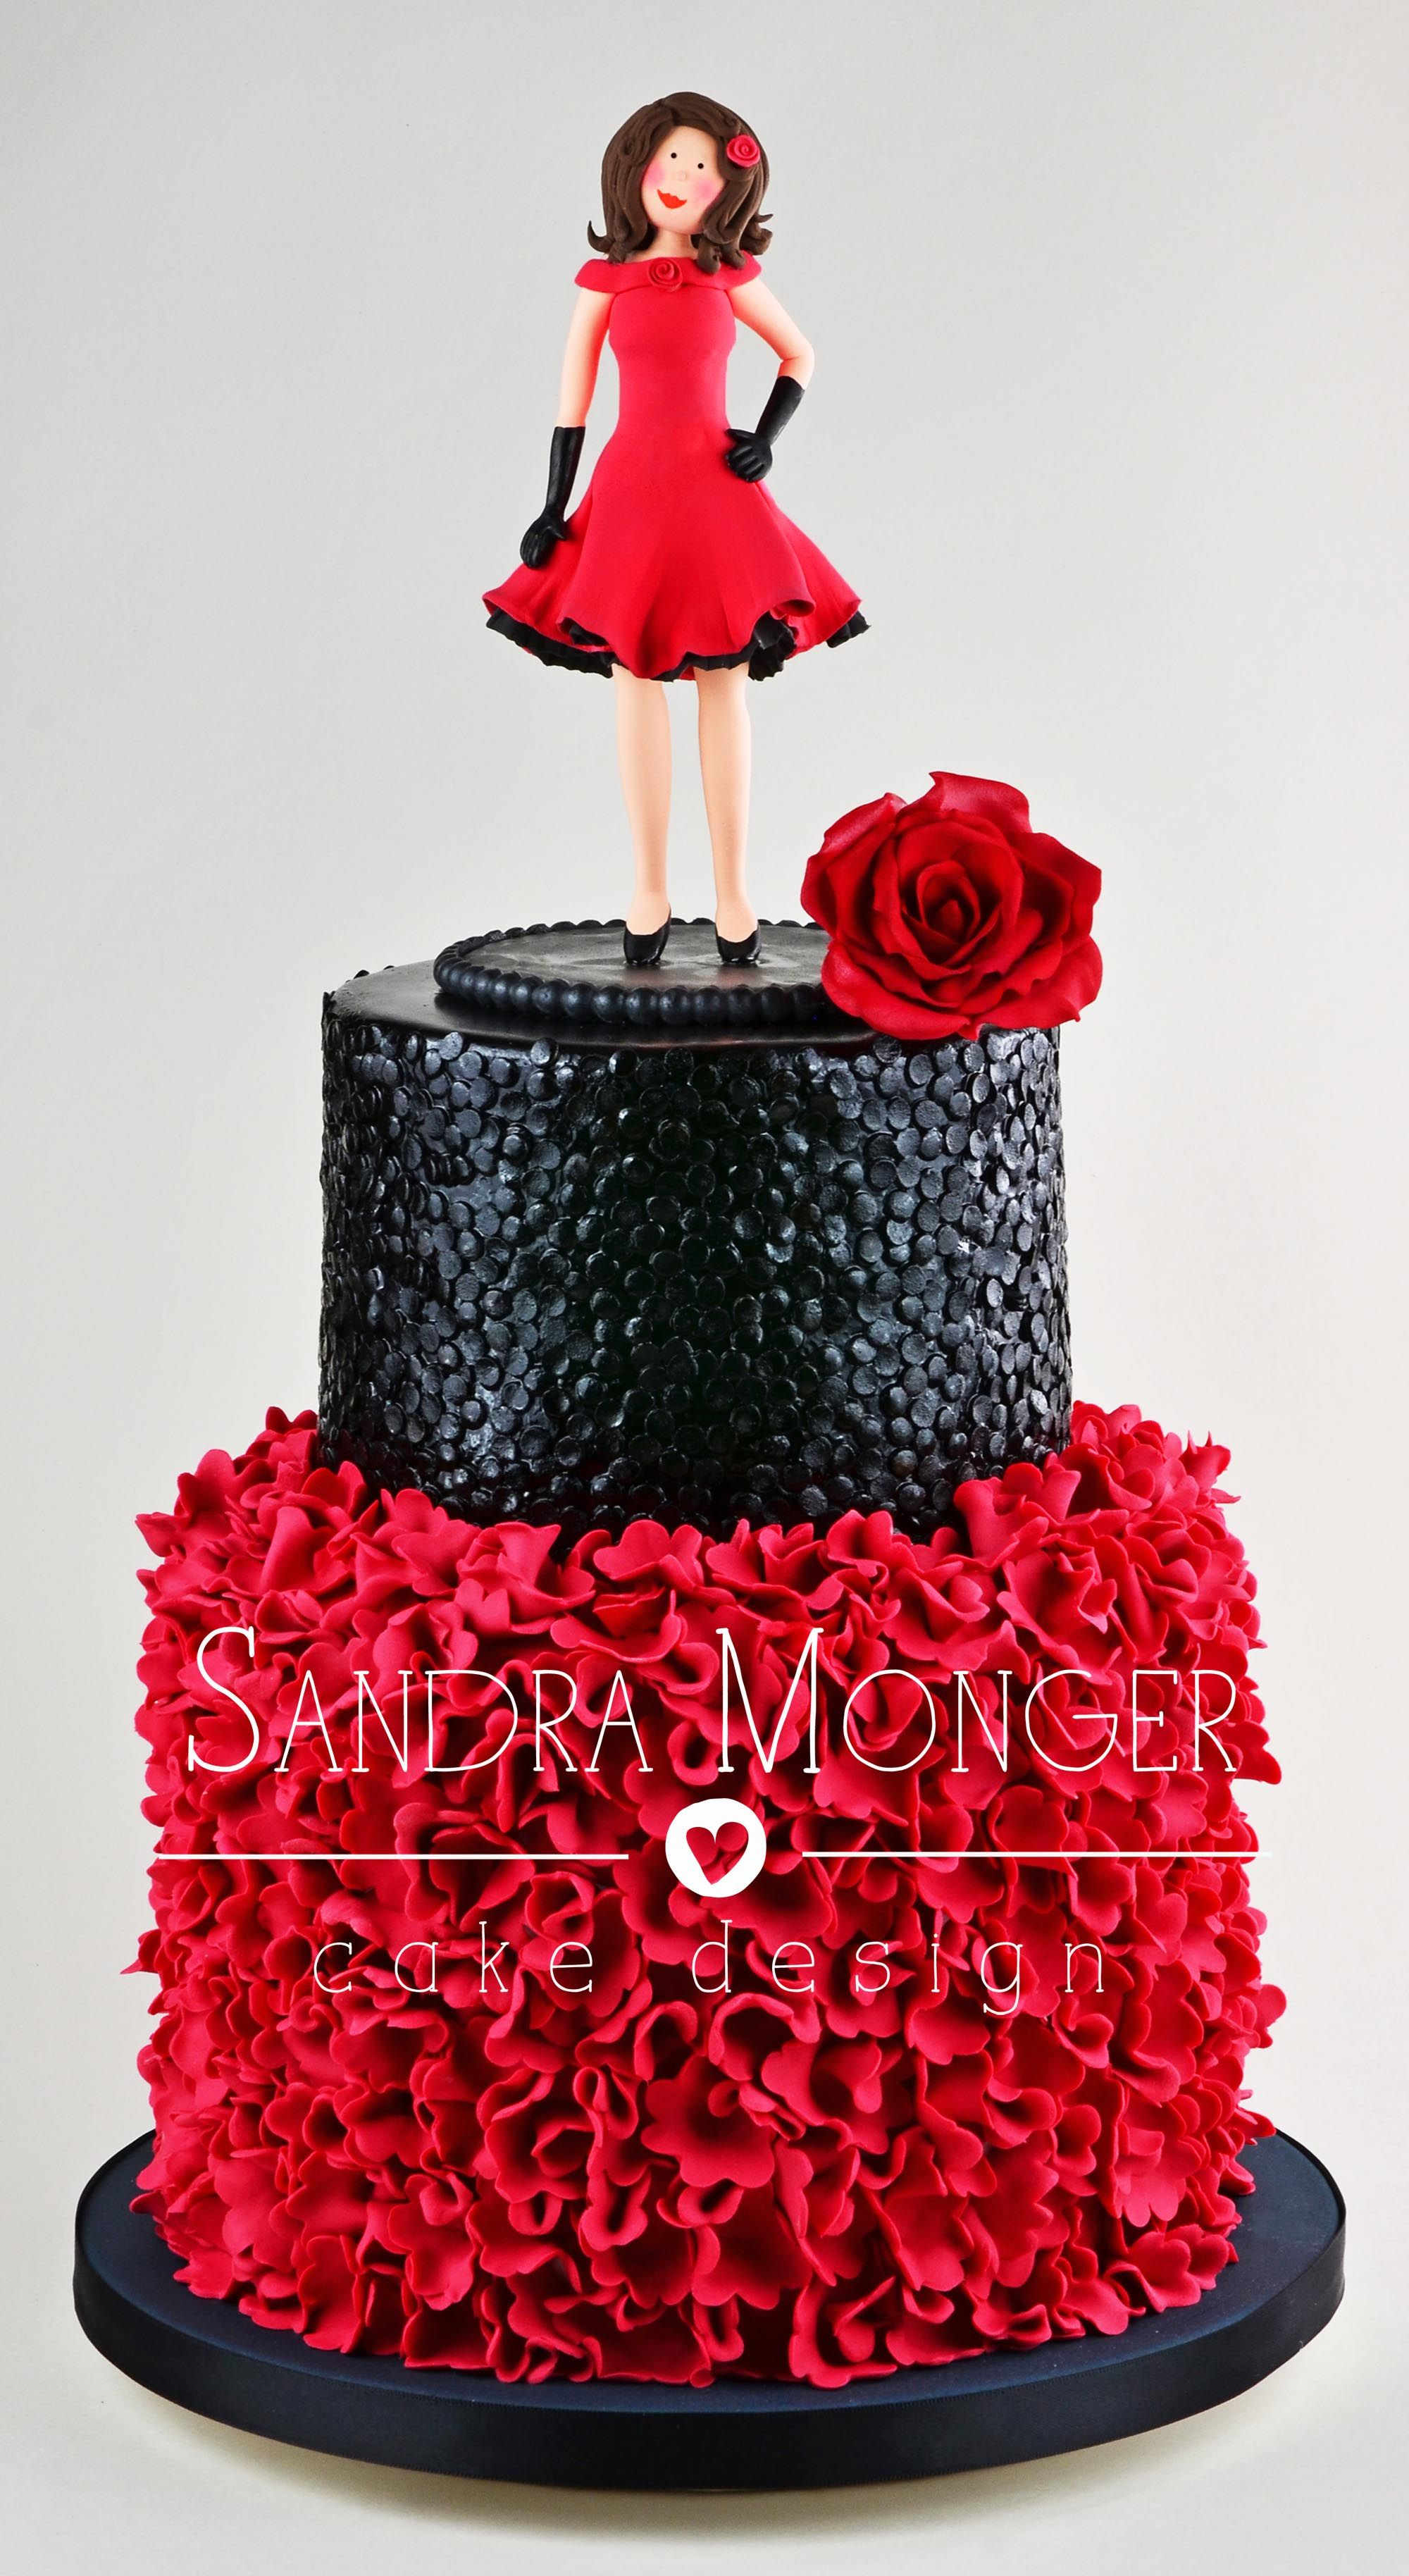 The Lady In Red Birthday Cake With Ruffles And Black Sugar